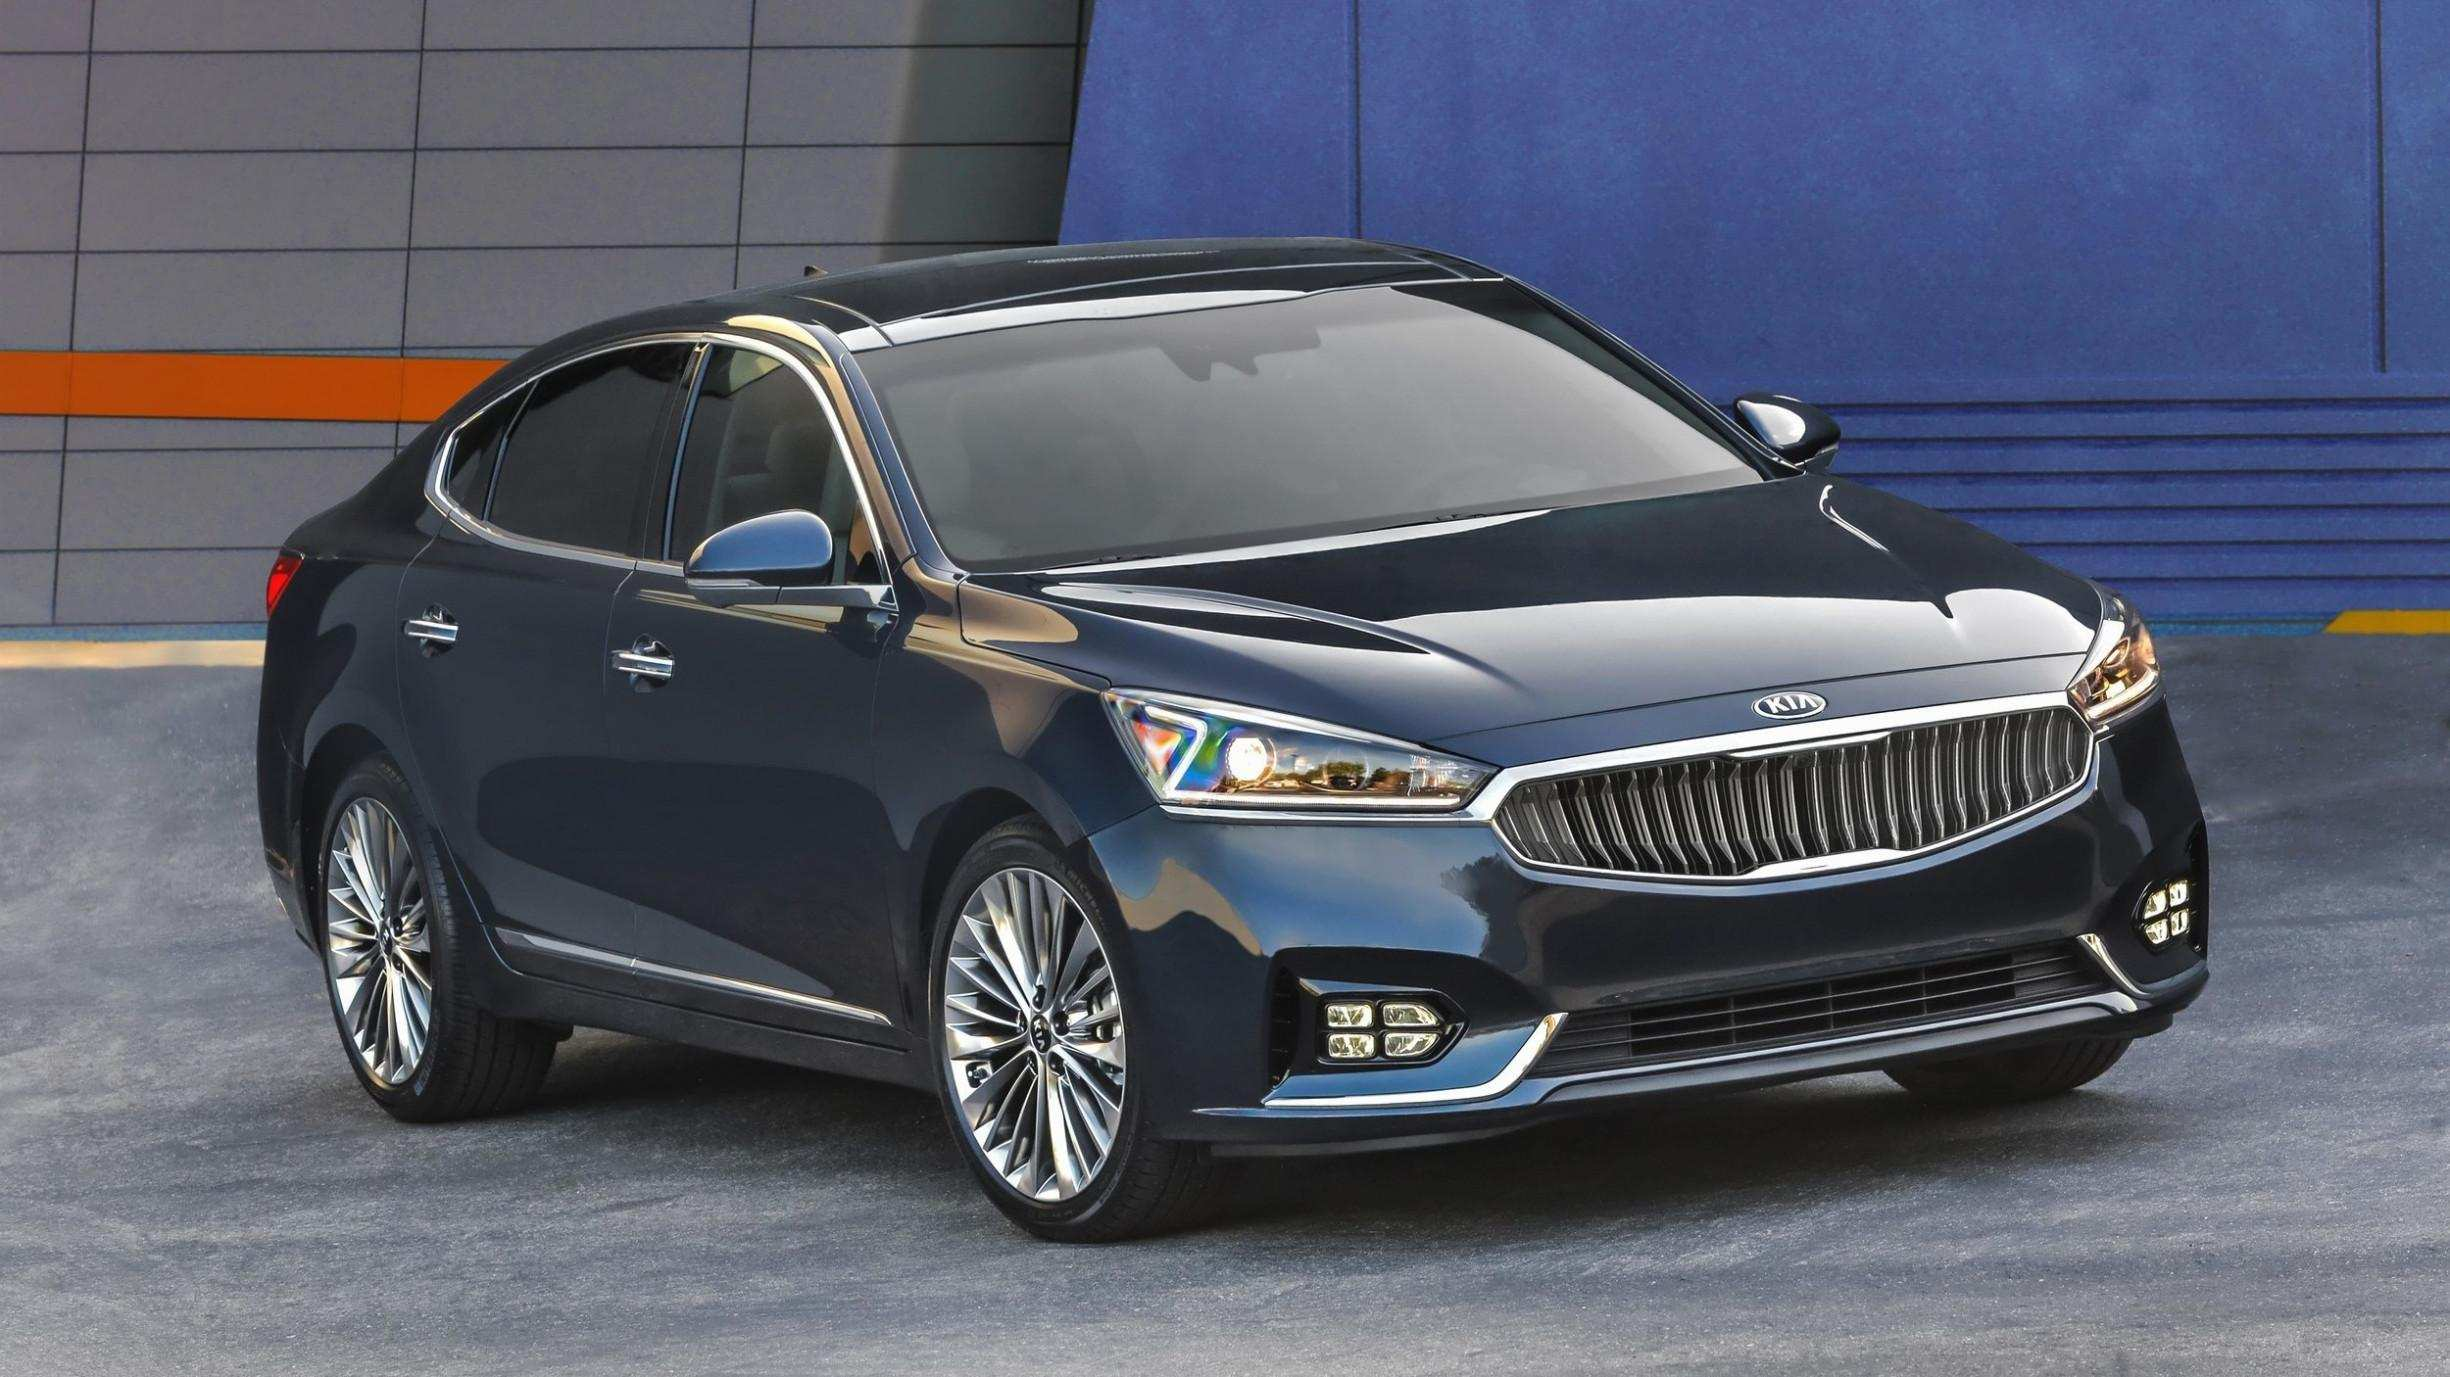 22 All New 2019 Kia Usa Price Design And Review